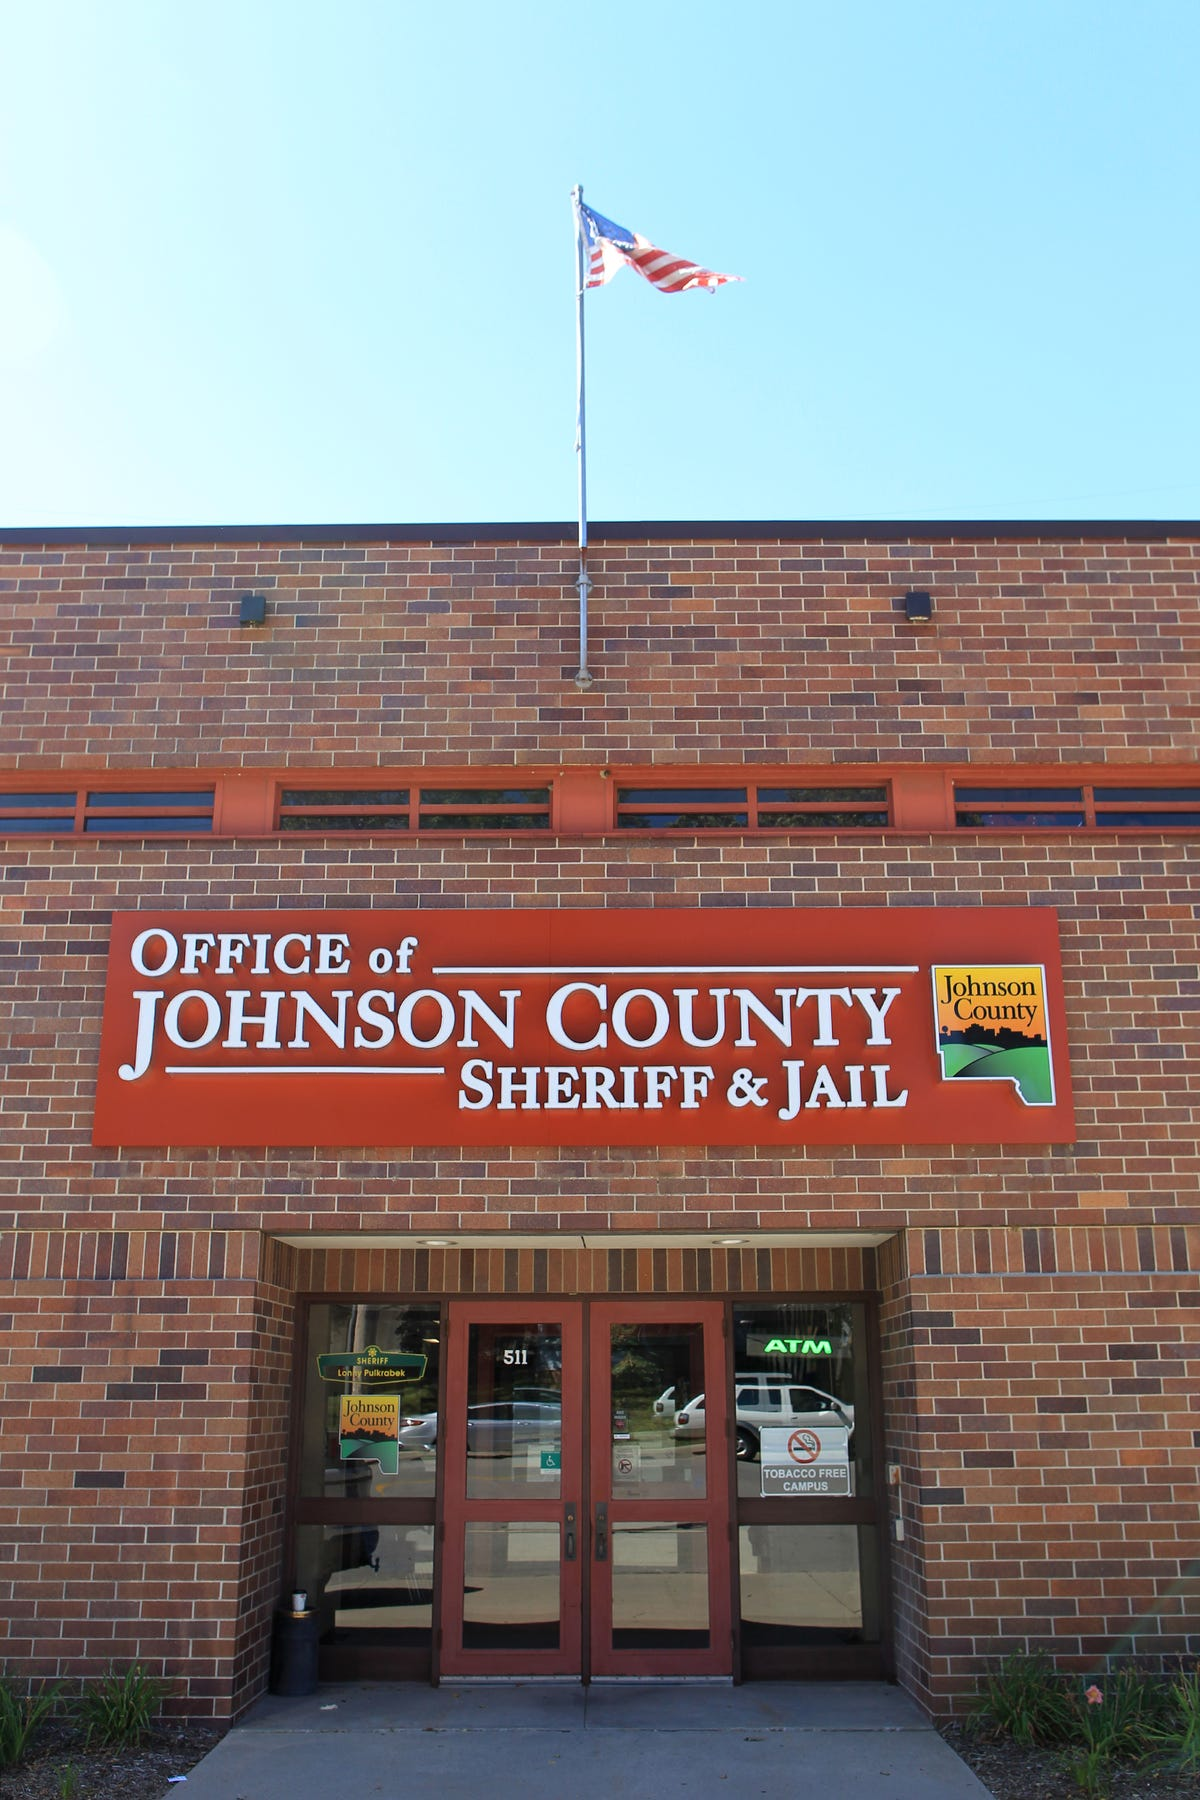 Johnson County says fixing prison, jail overcrowding 'takes